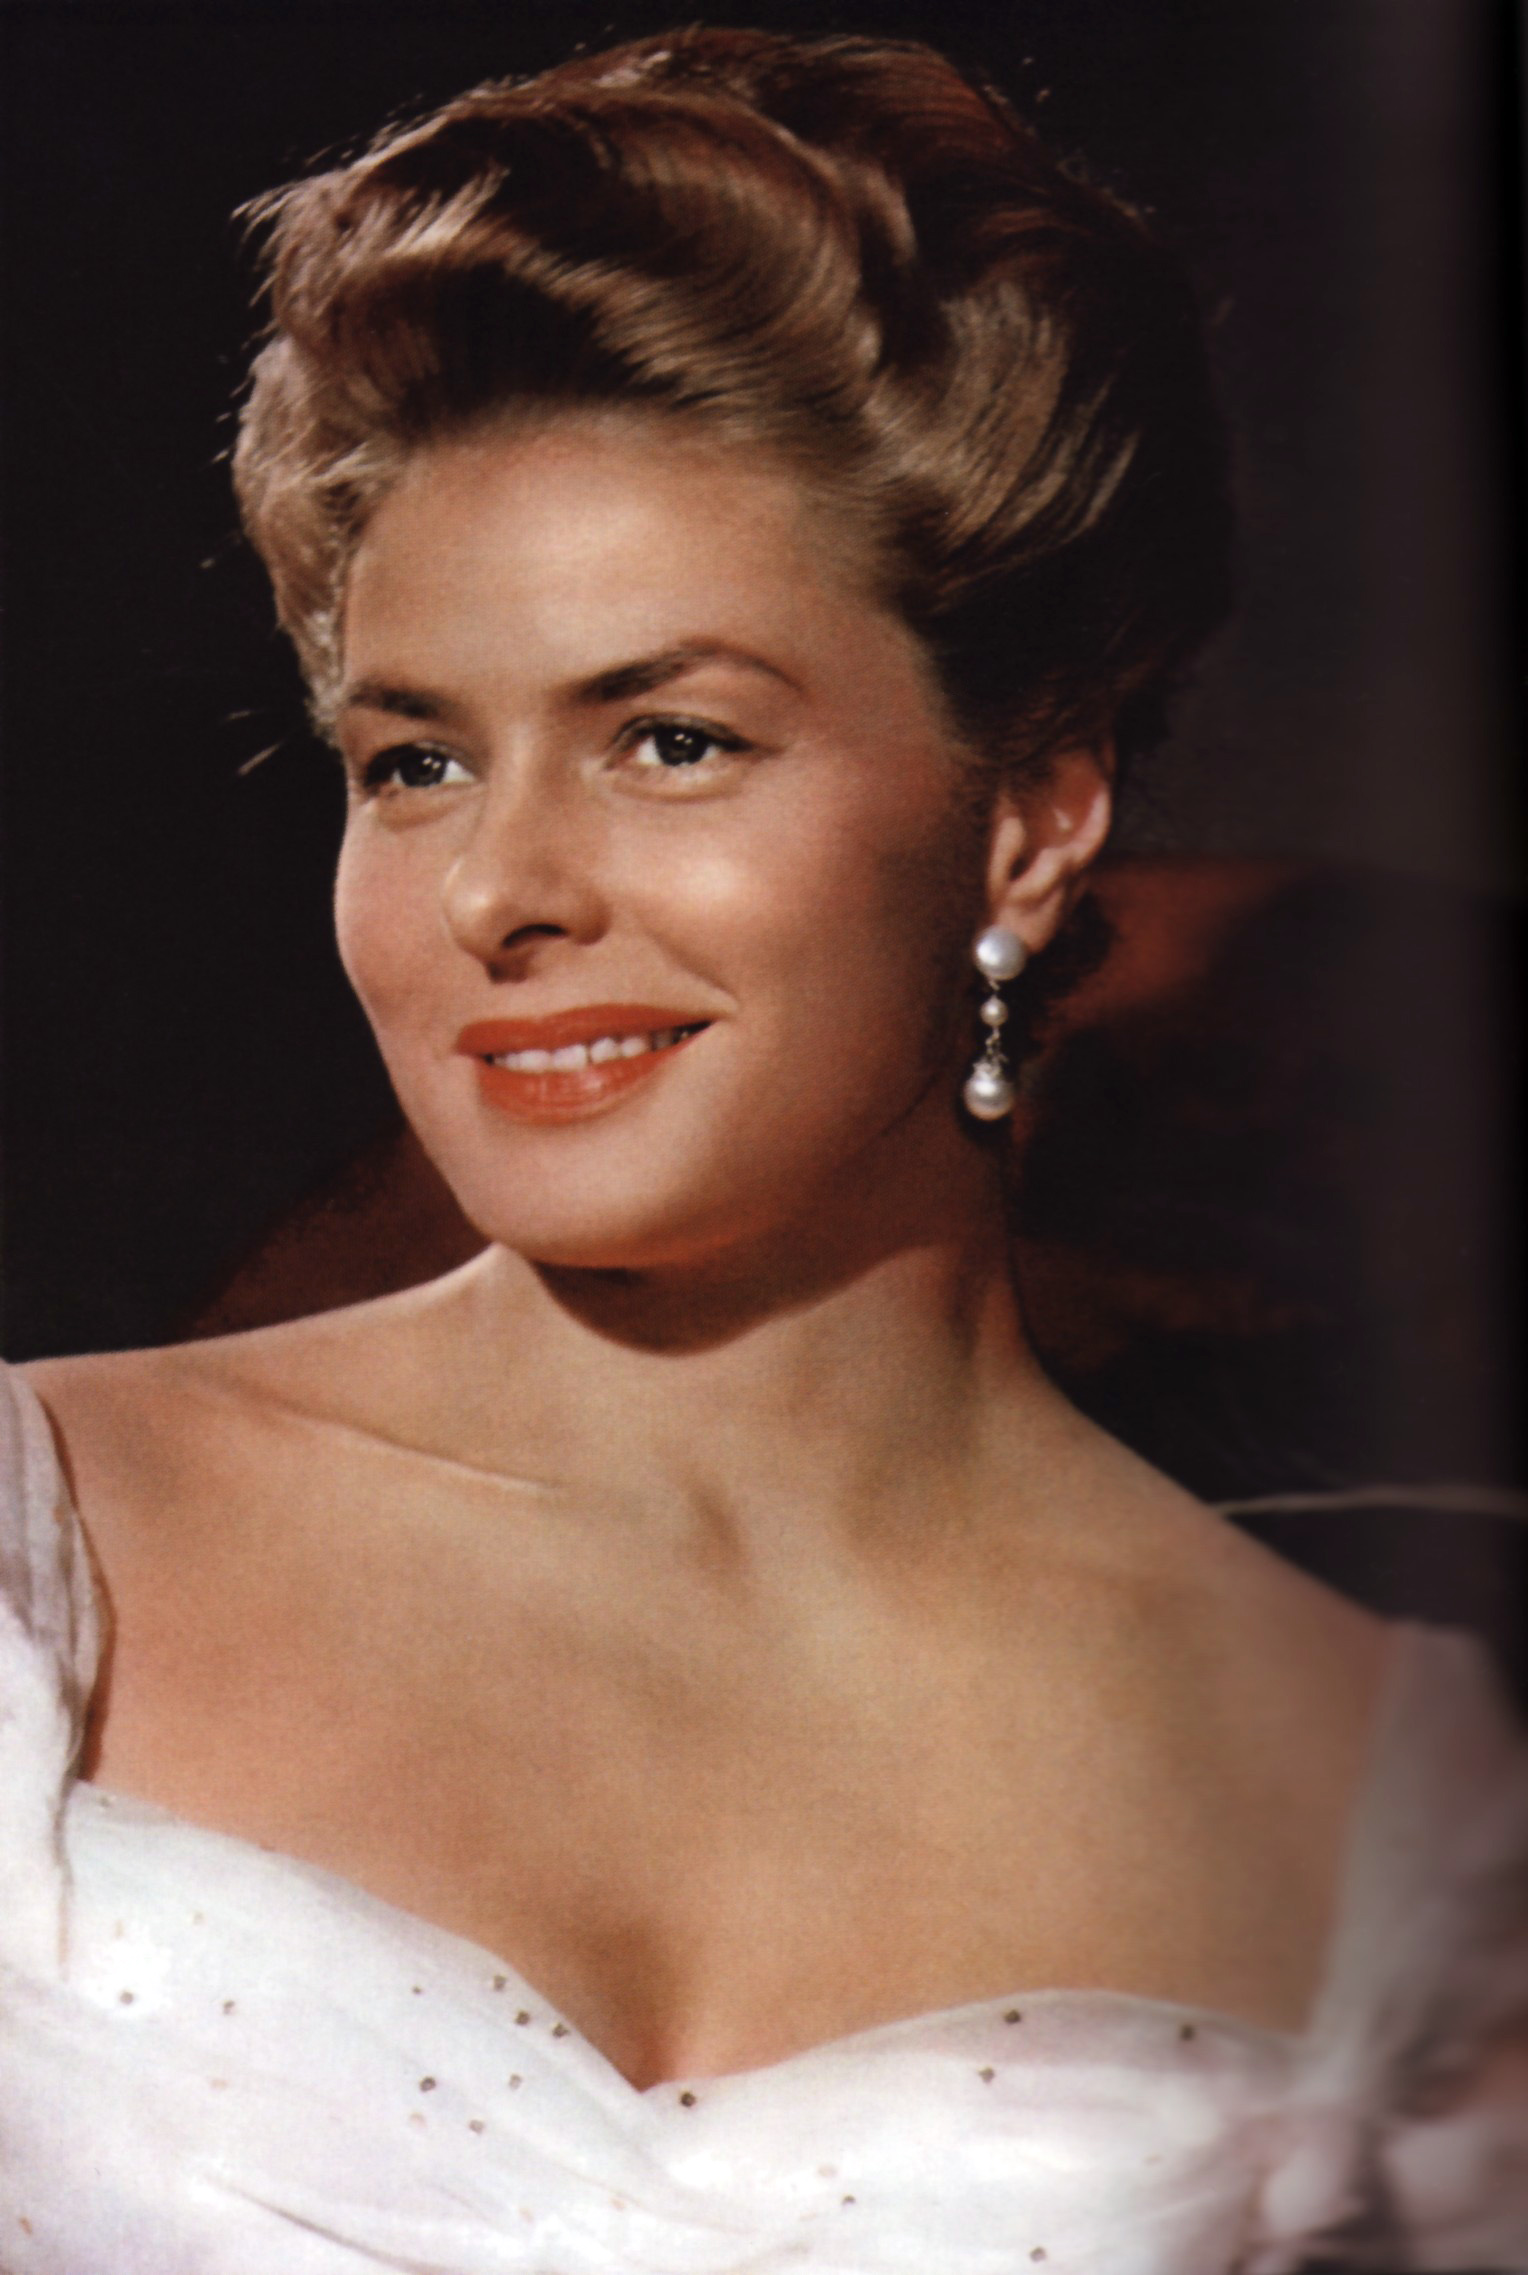 Thread: Classify Swedish-German Actress Ingrid Bergman